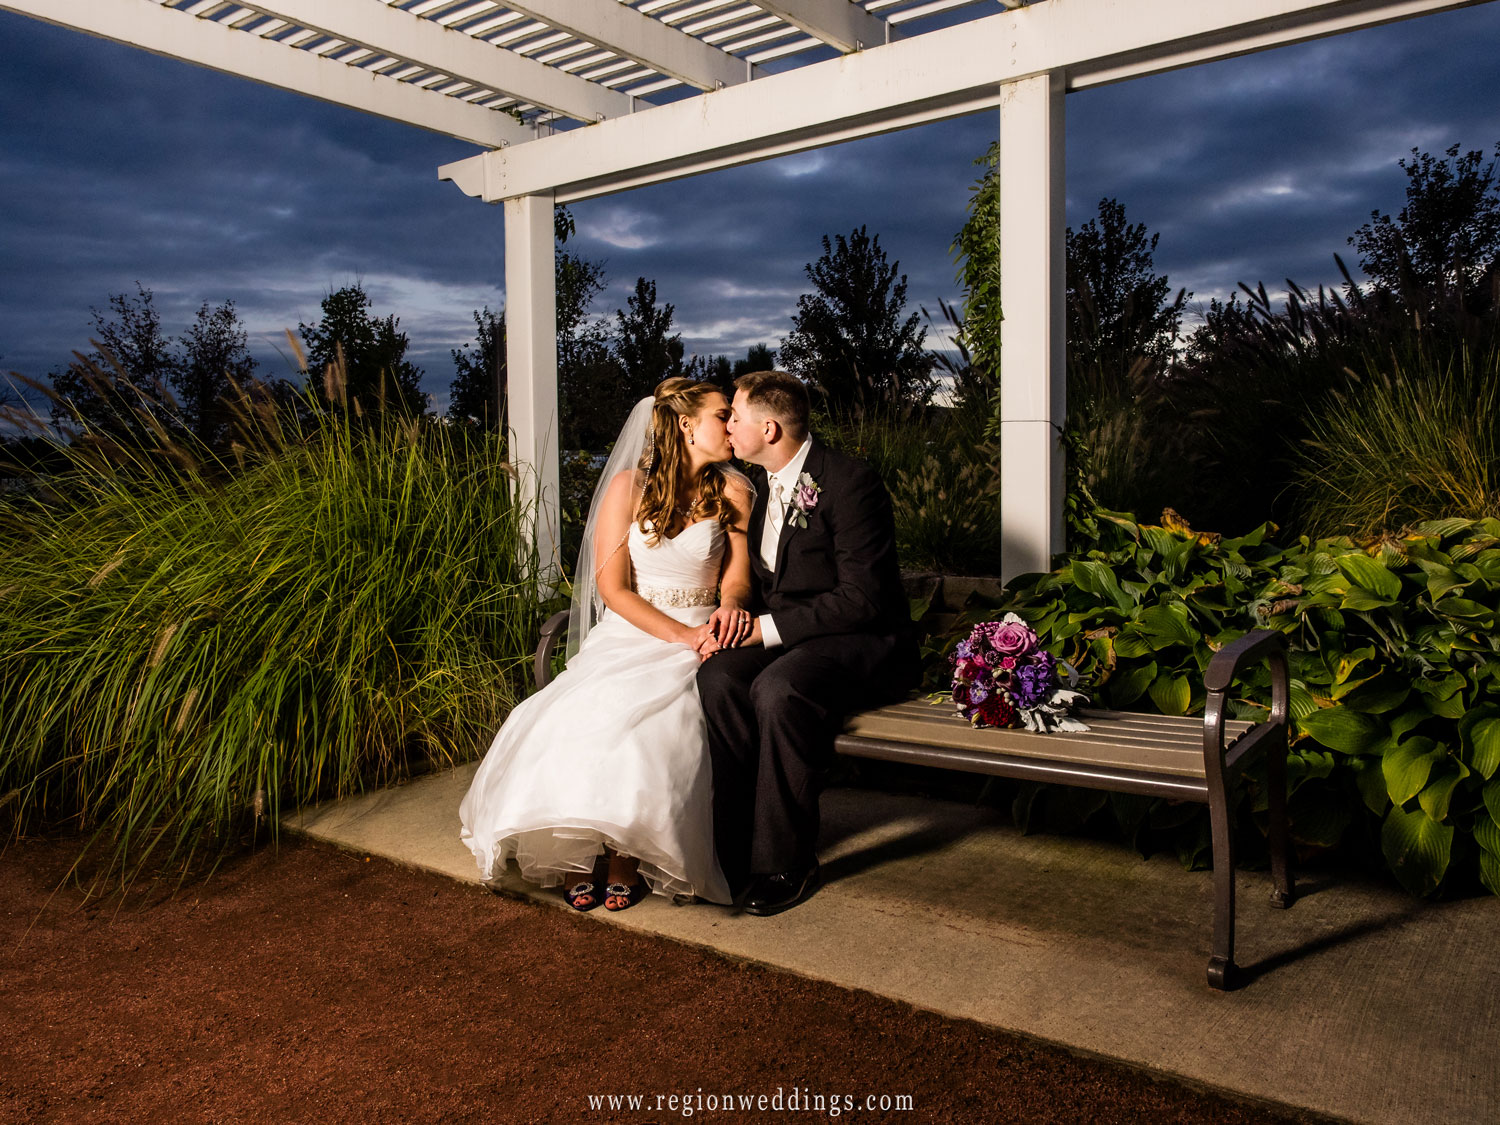 An evening kiss inside the Centennial Garden area.